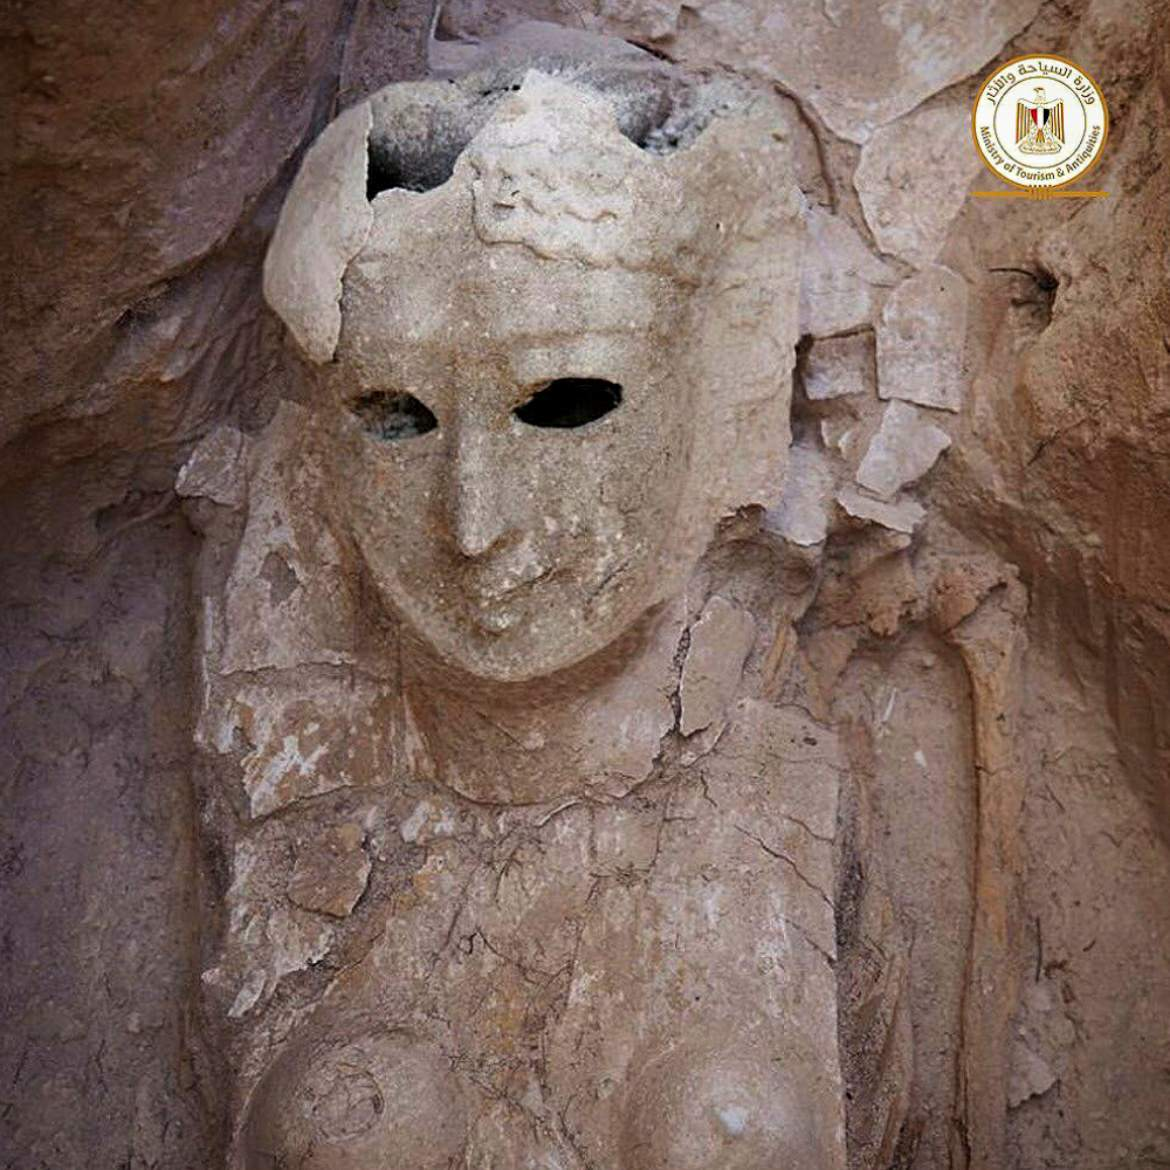 These are the remains of a mask that contained a female mummy and that were found in the tombs.